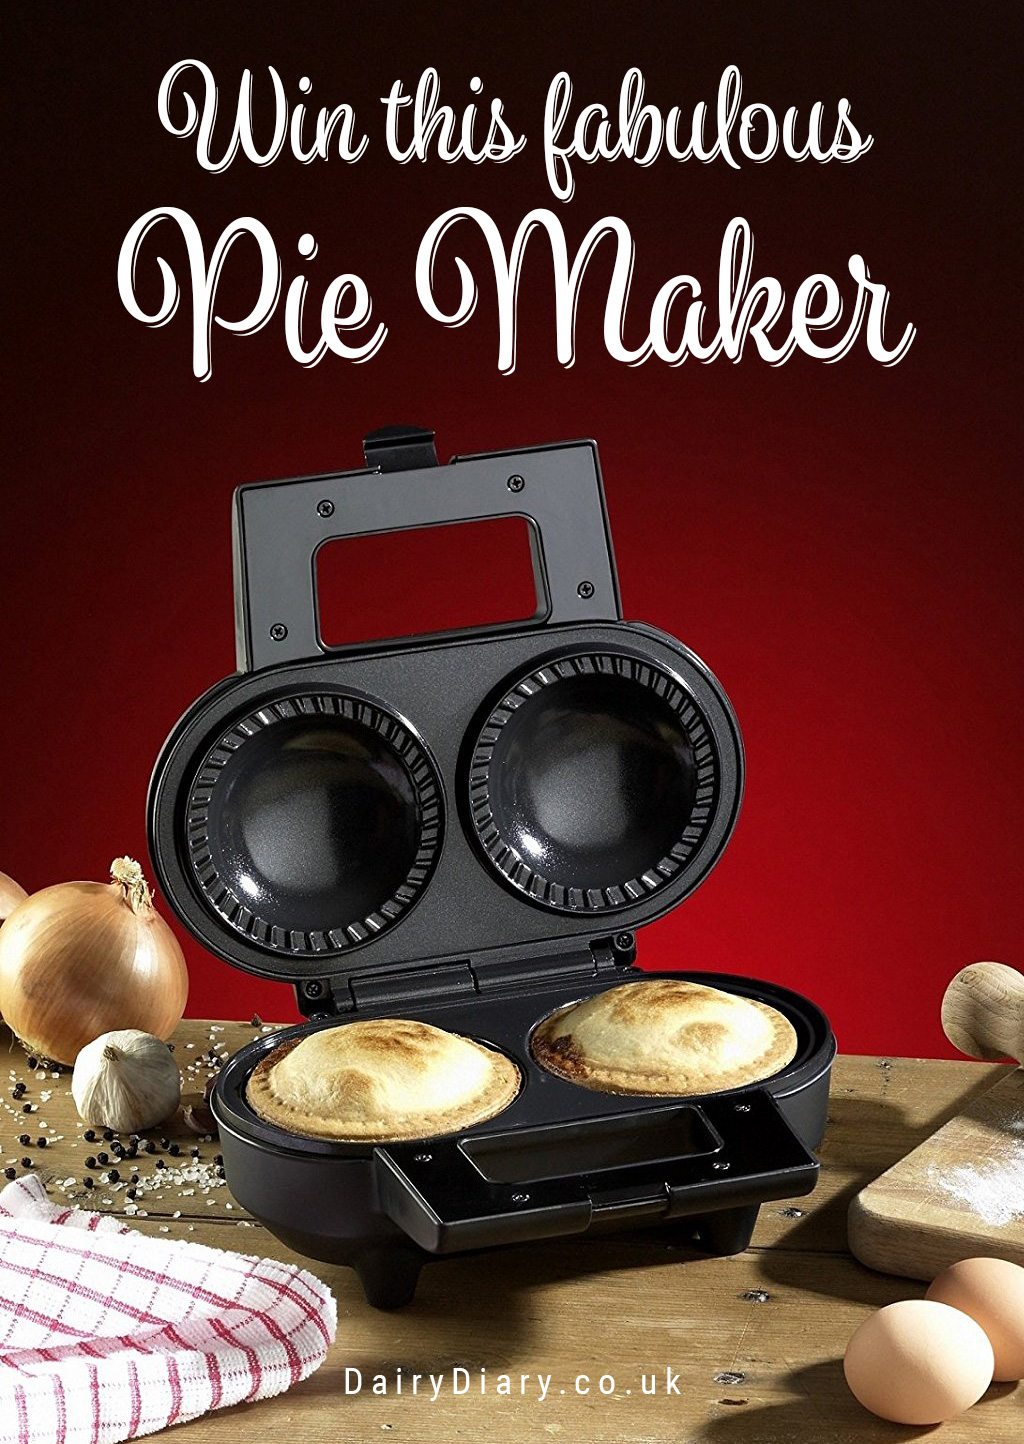 Win a Pie Maker with the Dairy Diary